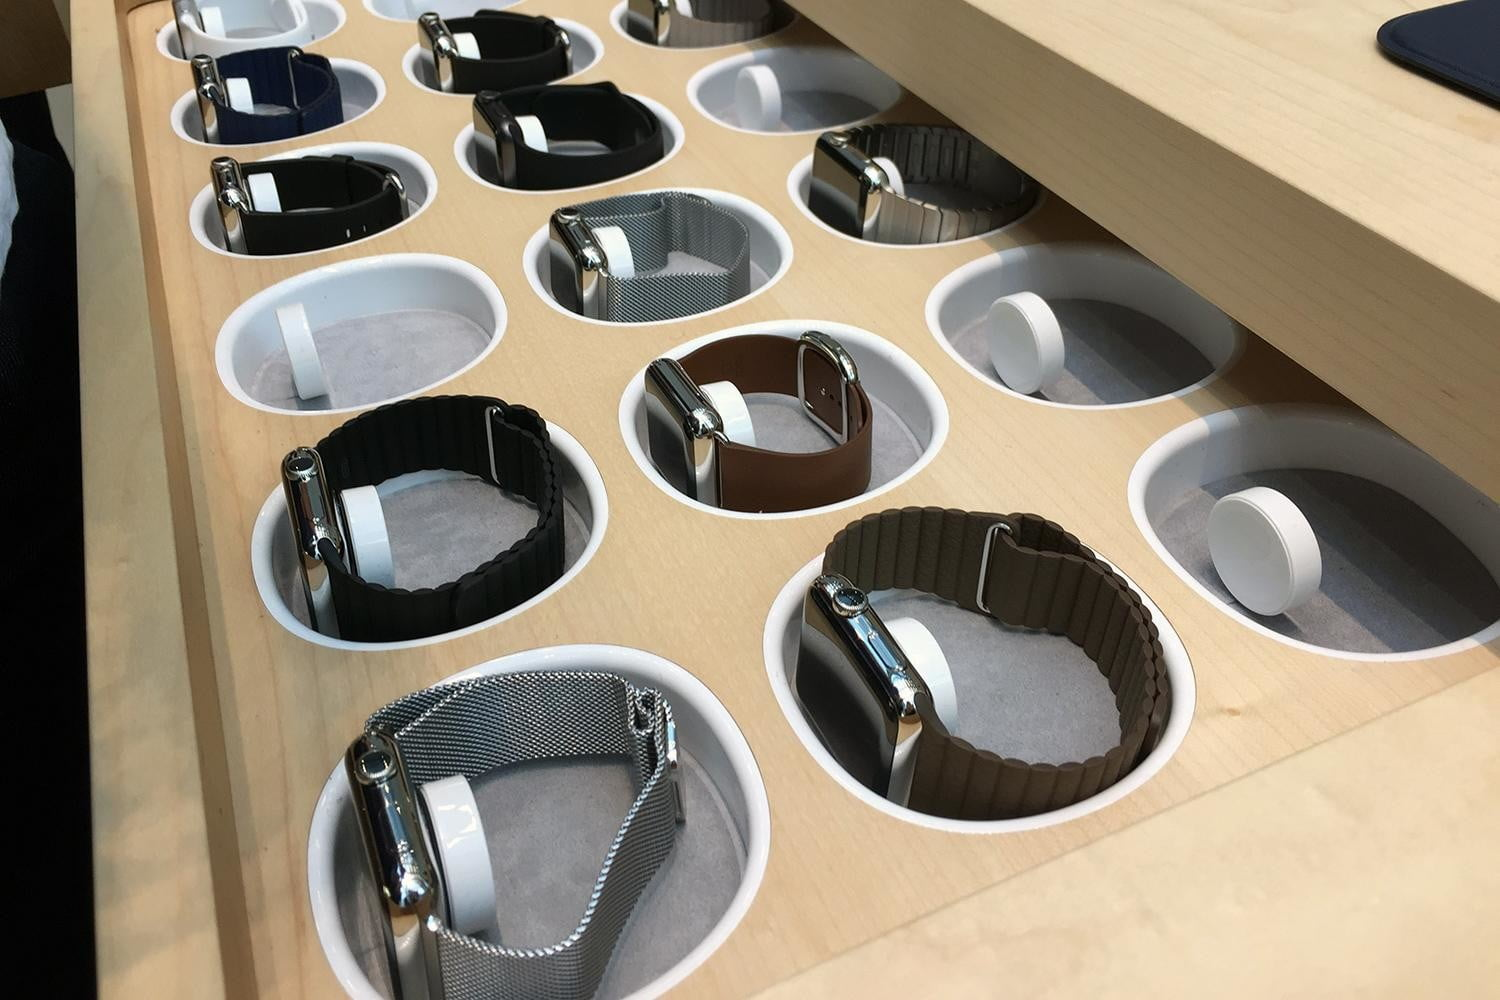 6 percent of Americans want to buy an Apple Watch — That's almost 15M watches